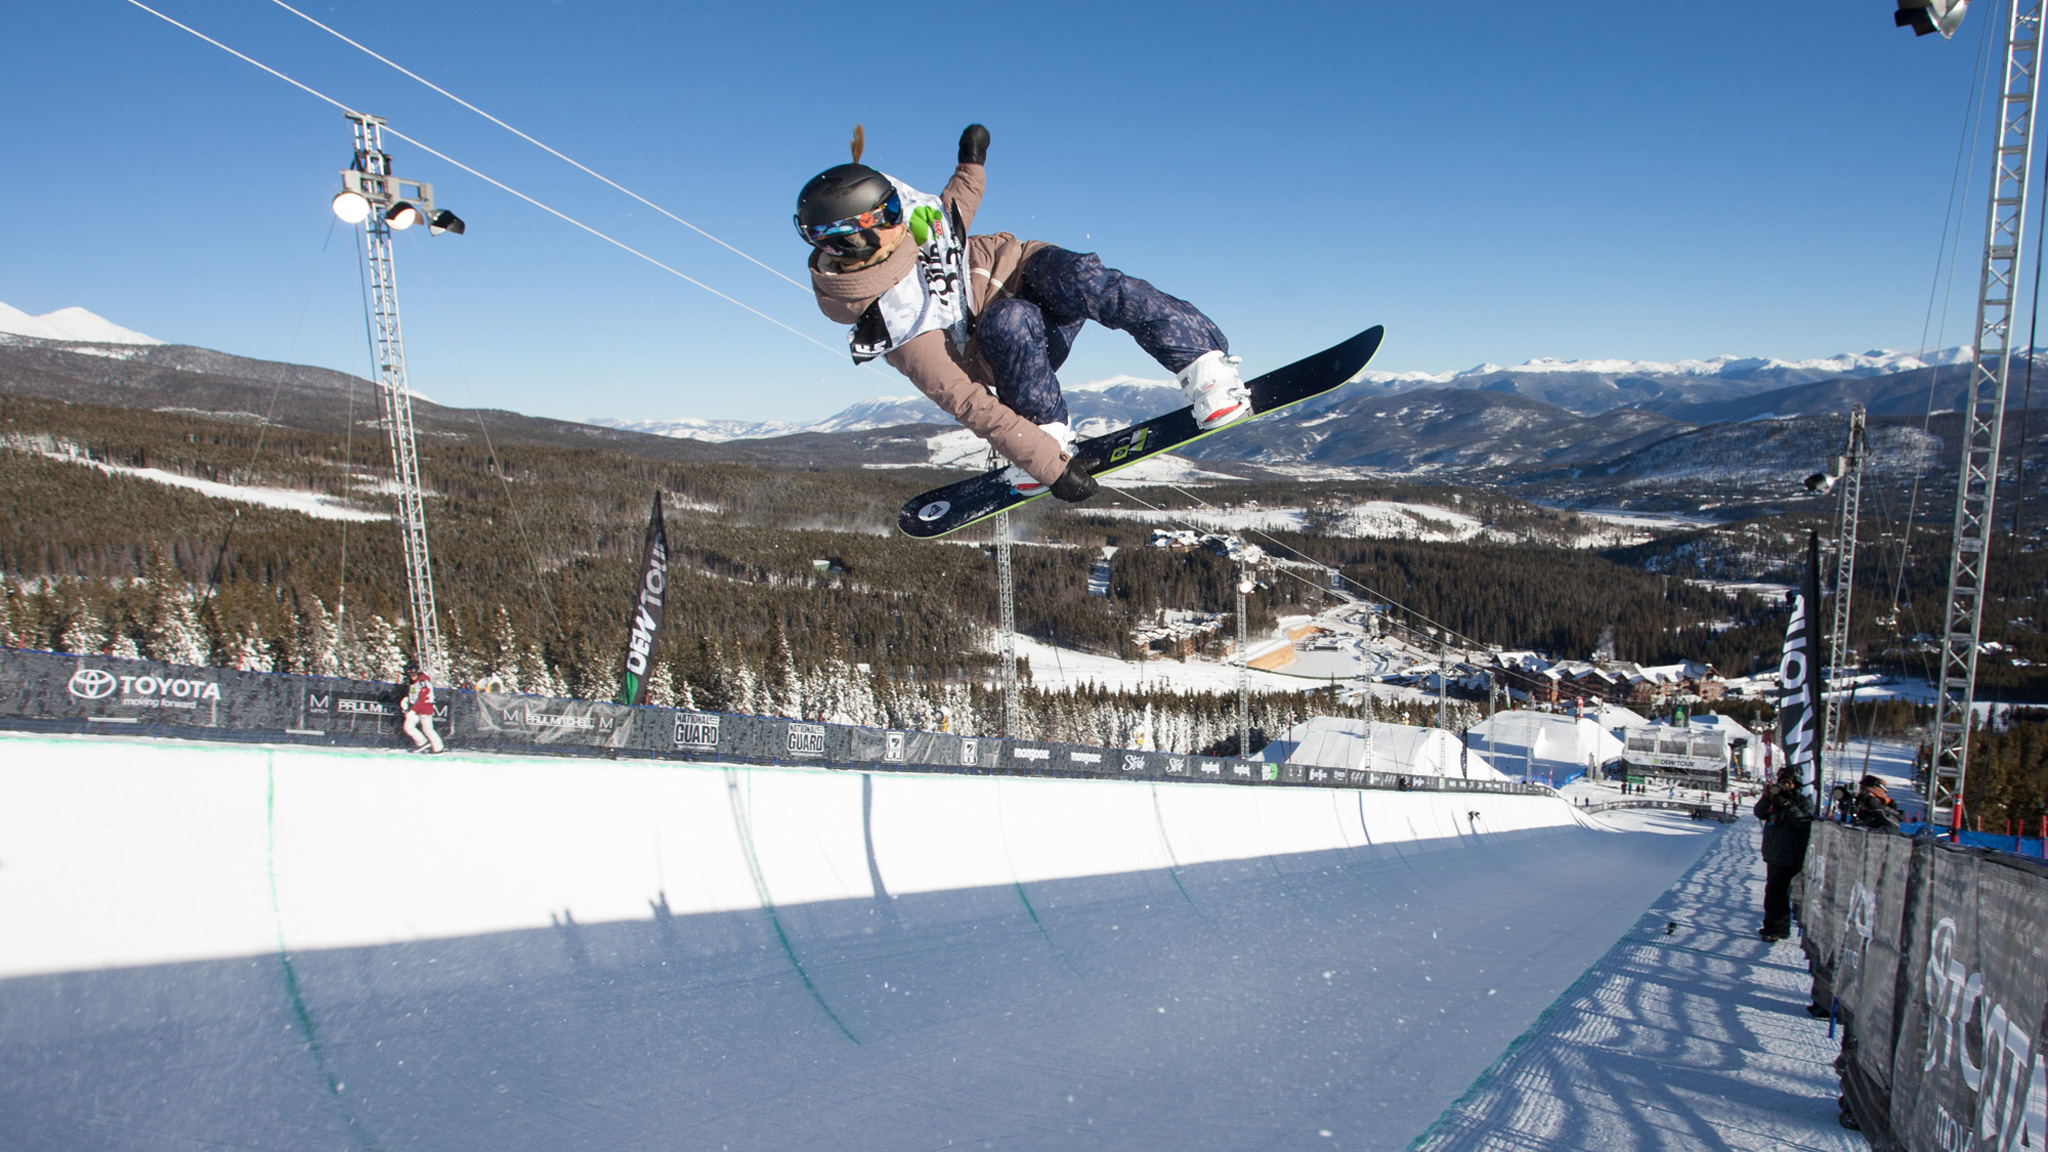 Torah Bright, Superpipe winner